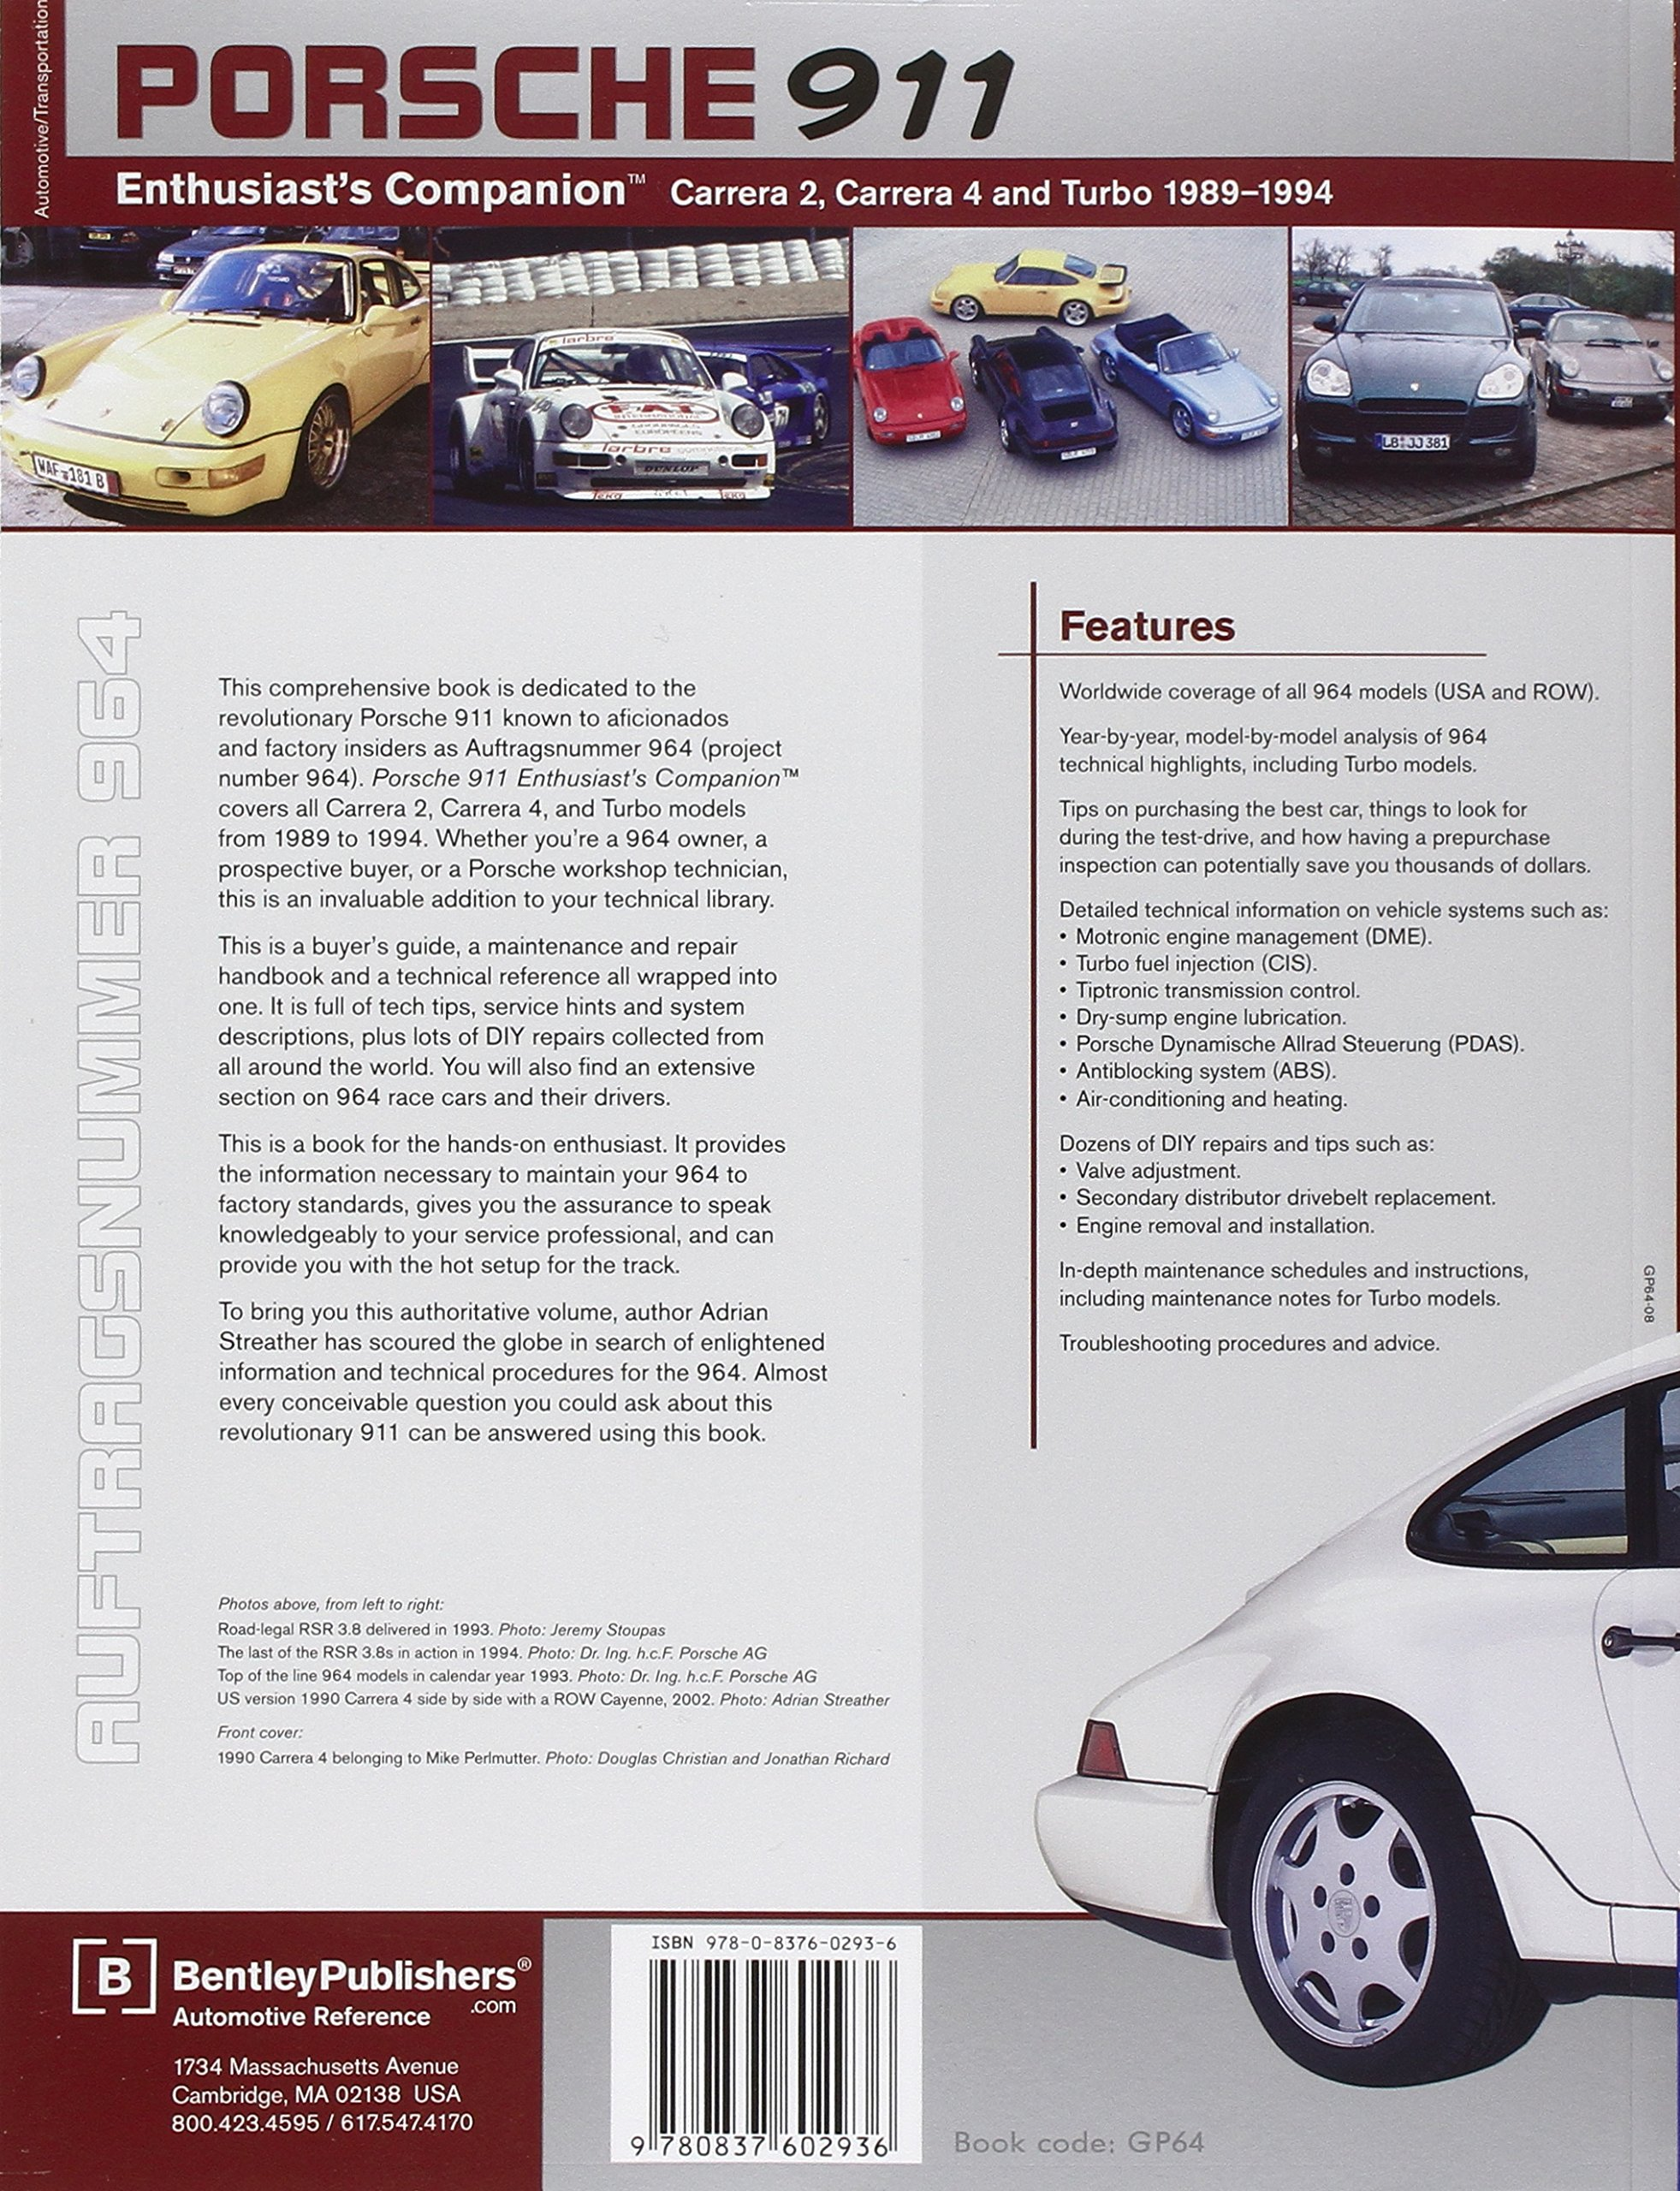 Porsche 911 Enthusiasts Companion: Carrera 2, Carrera 4, and Turbo 1989-1994: Amazon.es: Adrian Streather: Libros en idiomas extranjeros